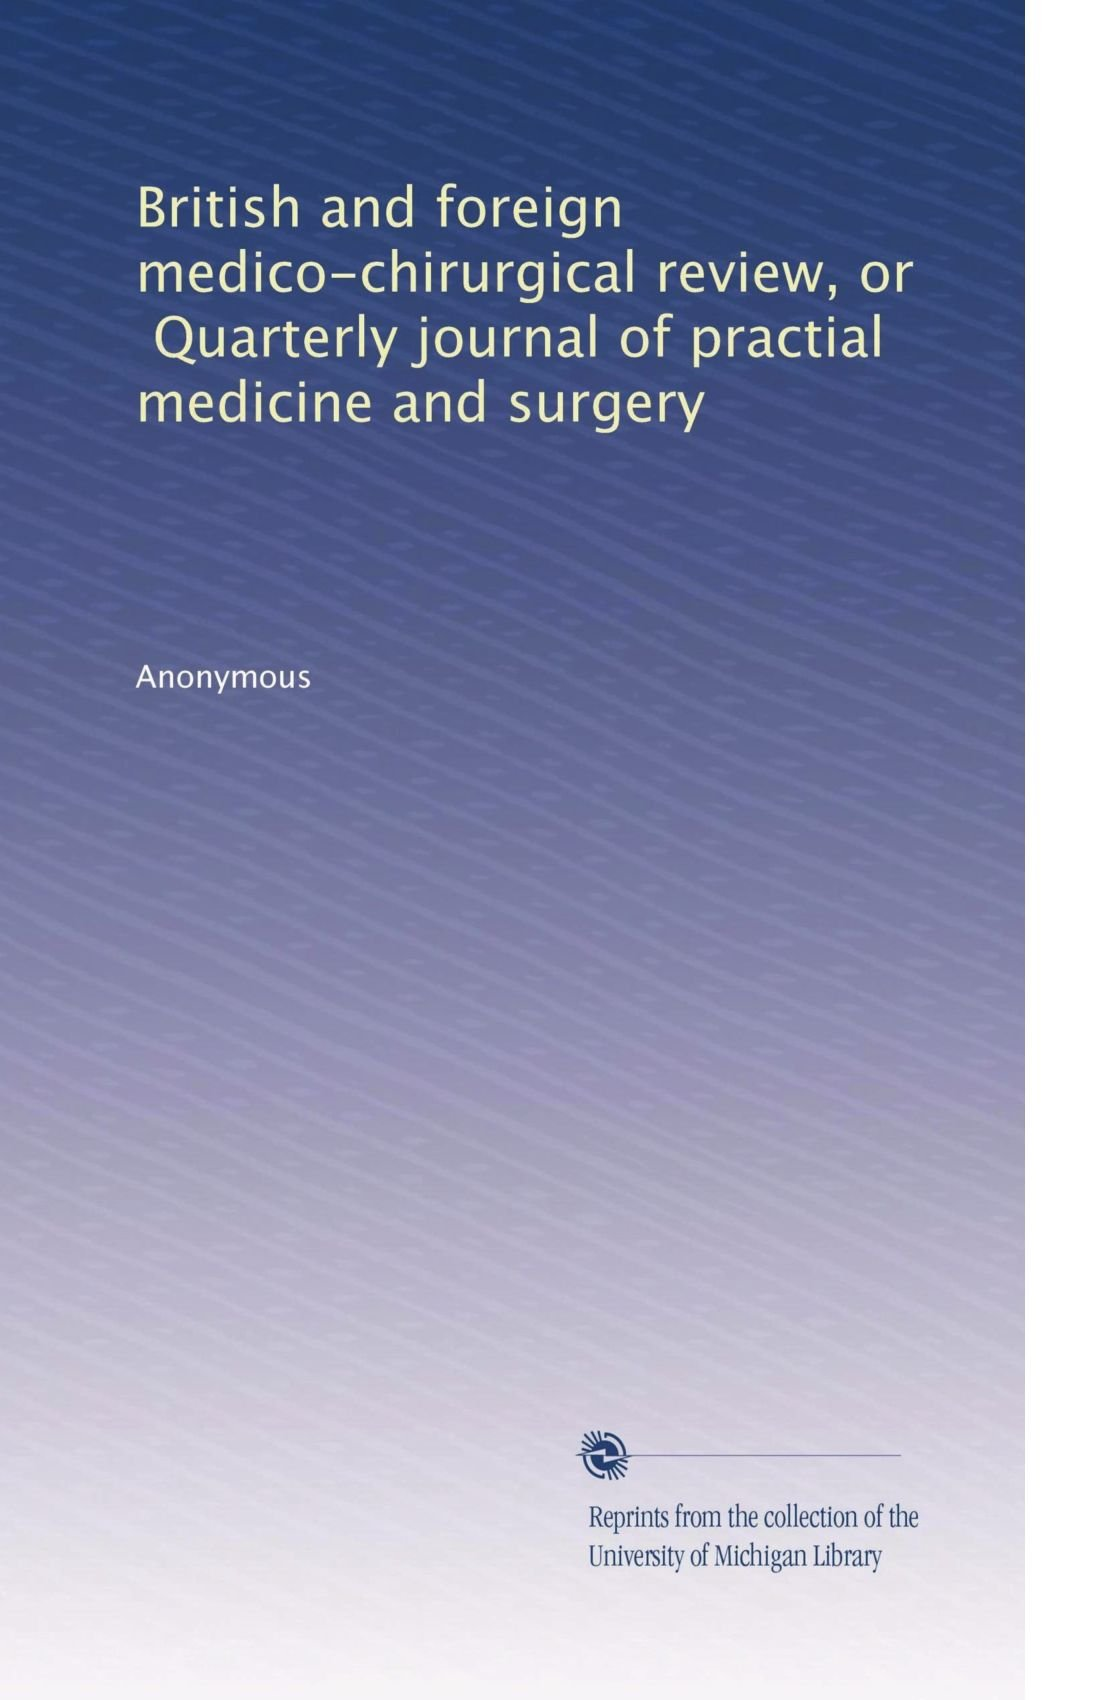 Download British and foreign medico-chirurgical review, or, Quarterly journal of practial medicine and surgery (Volume 46) pdf epub